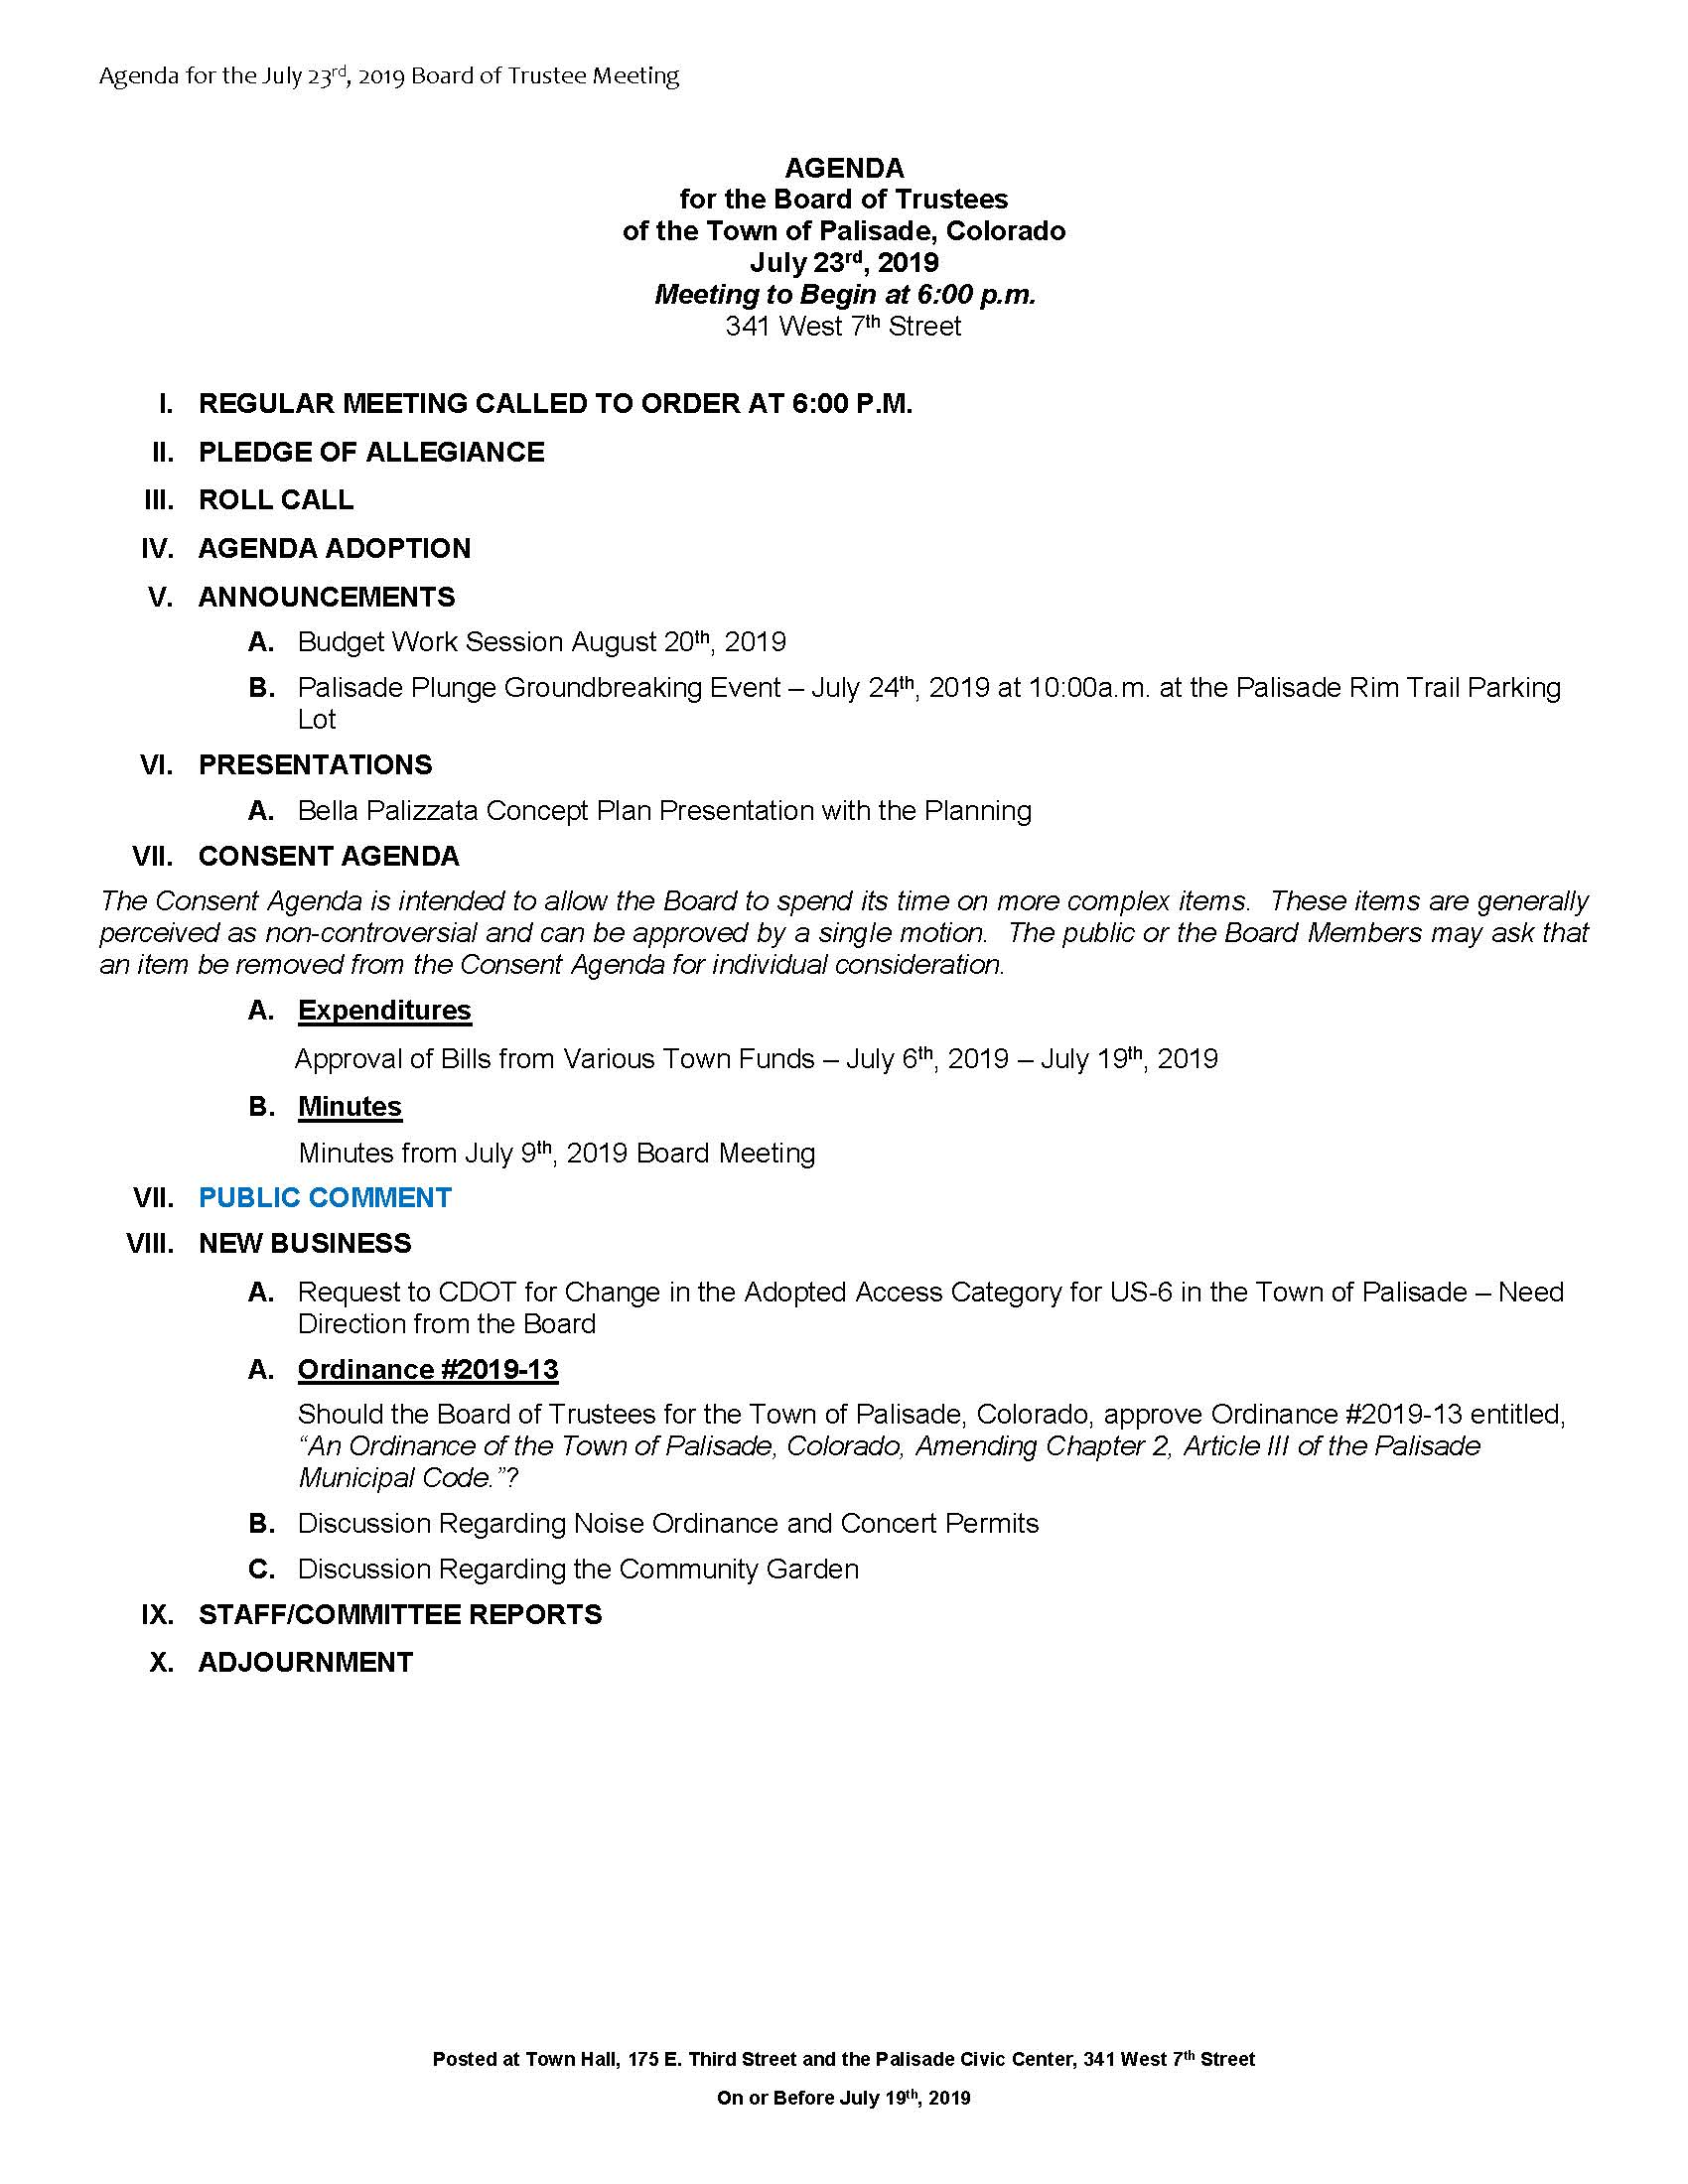 July 23rd 2019 Board Meeting Agenda